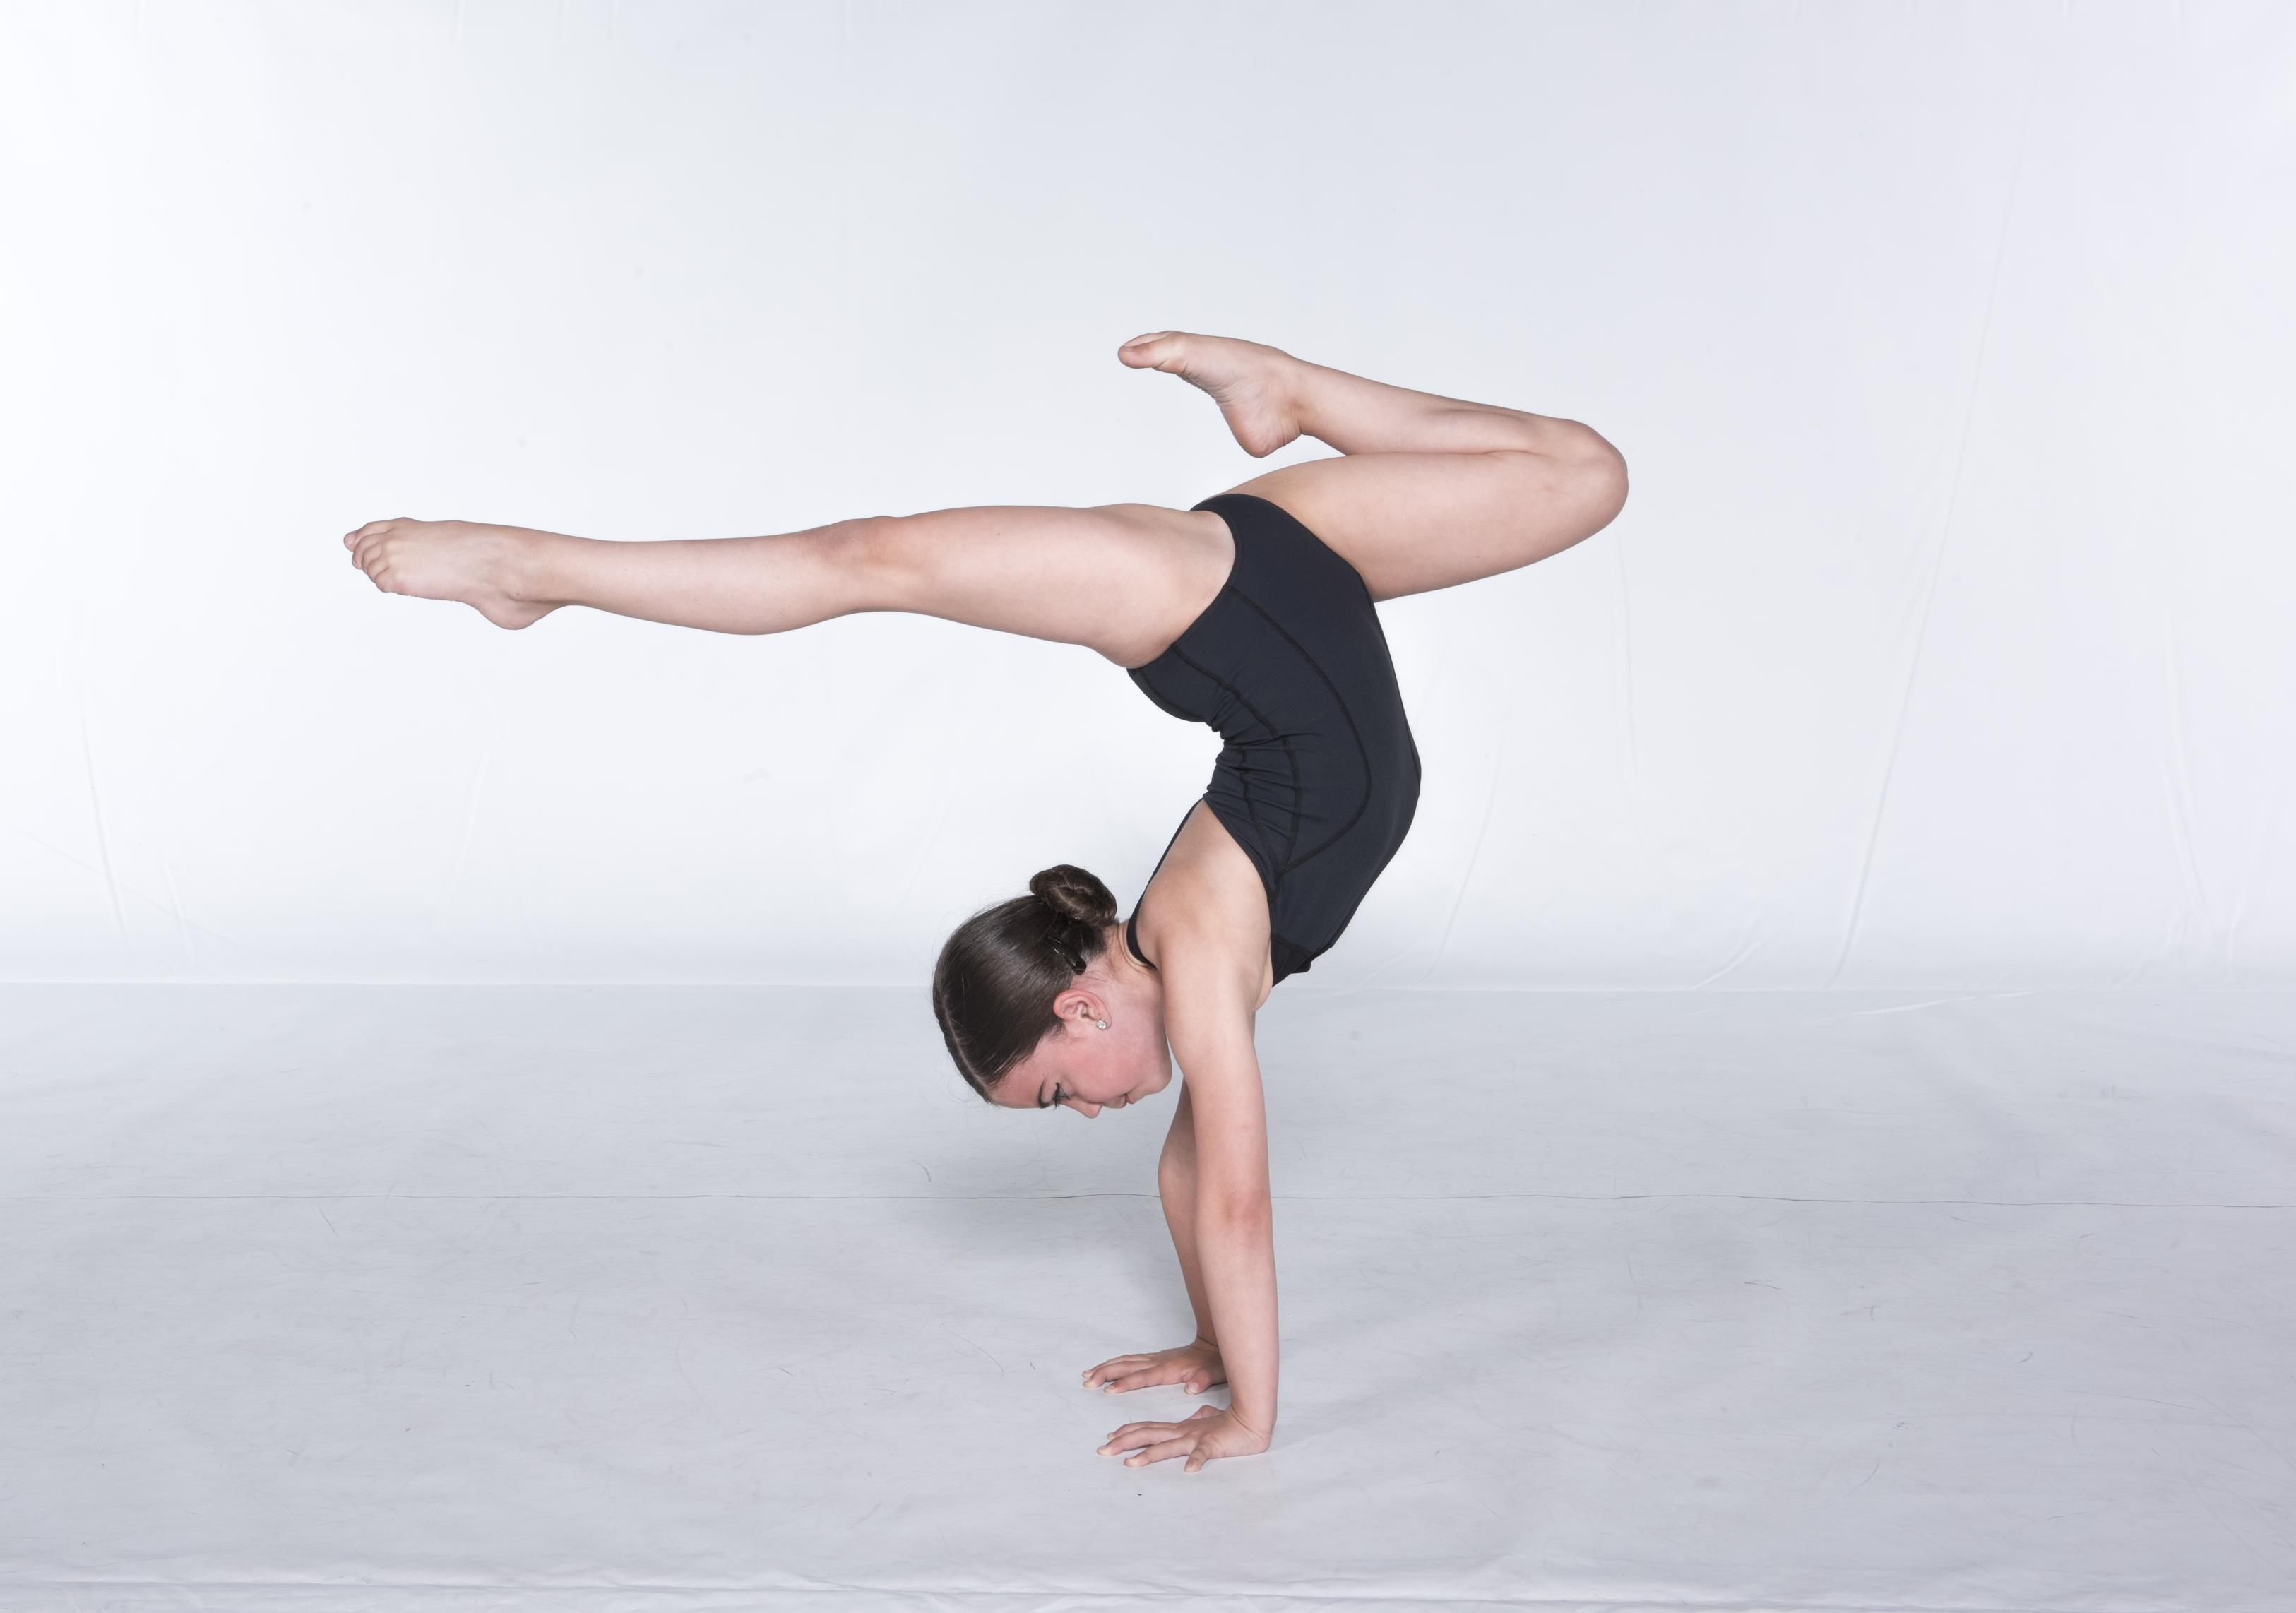 Acro Dance Styles And Techniques Your Child Will Learn With Lessons